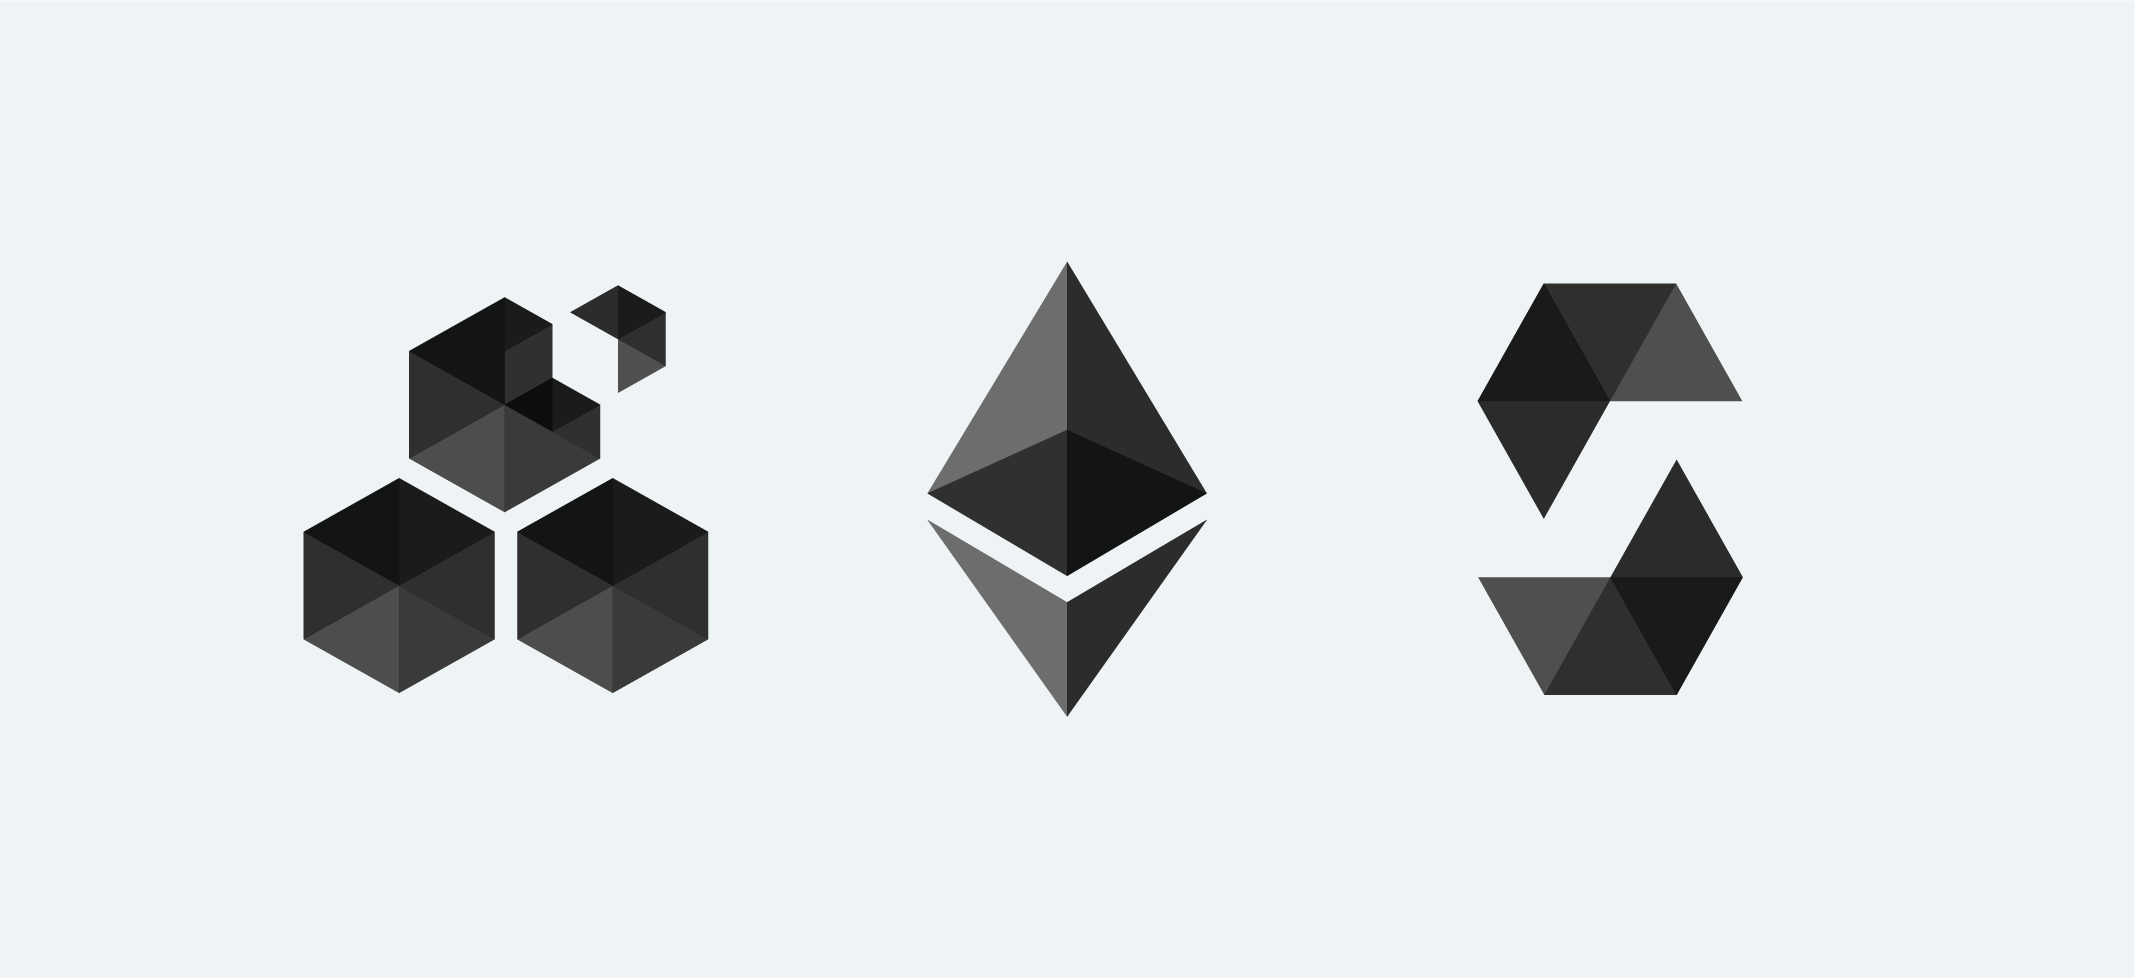 Ethereum's existing logo along with Swarm, and Solidity